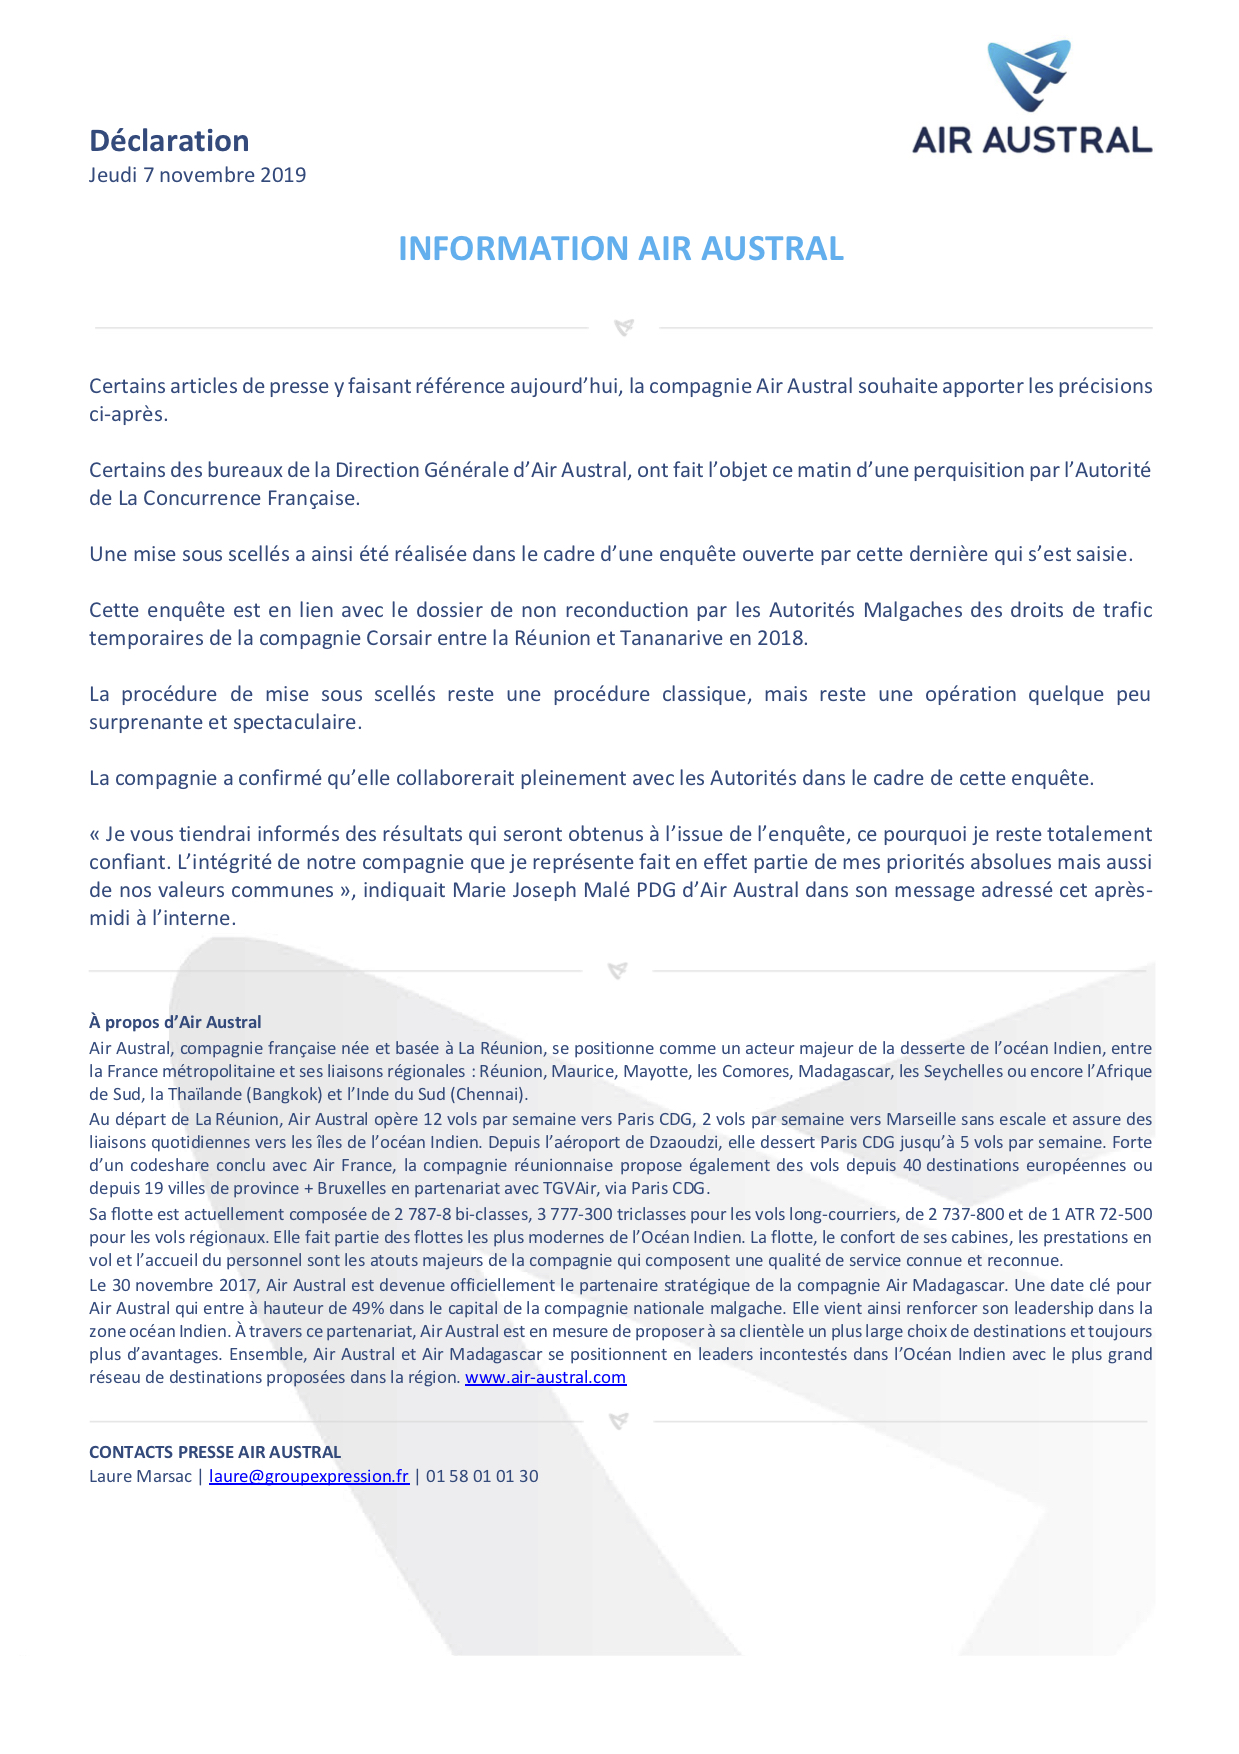 071119 Informations Air Austral